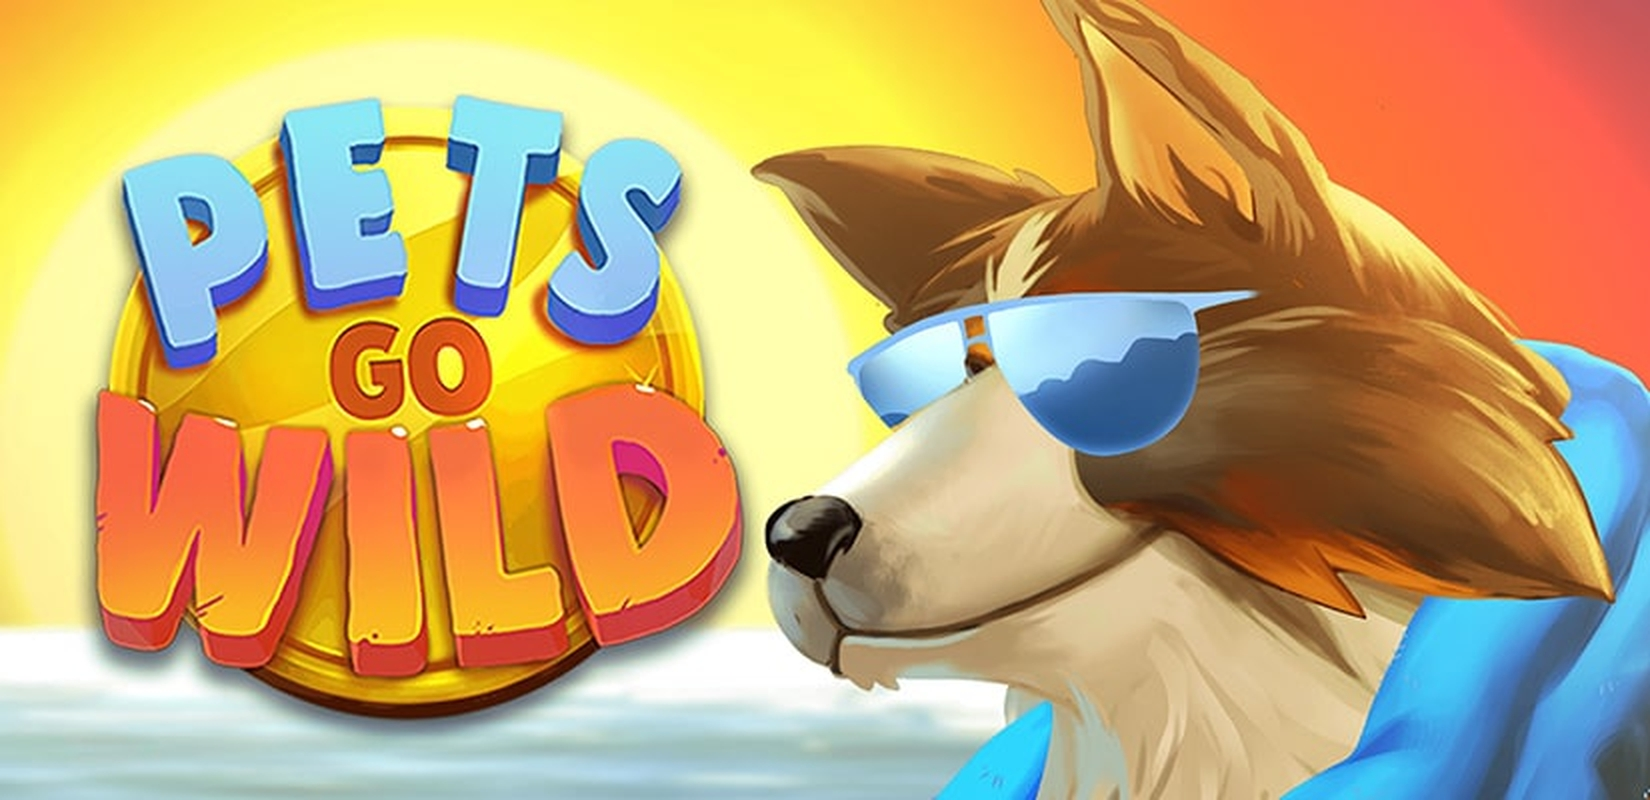 The Pets Go Wild Online Slot Demo Game by Skillzzgaming